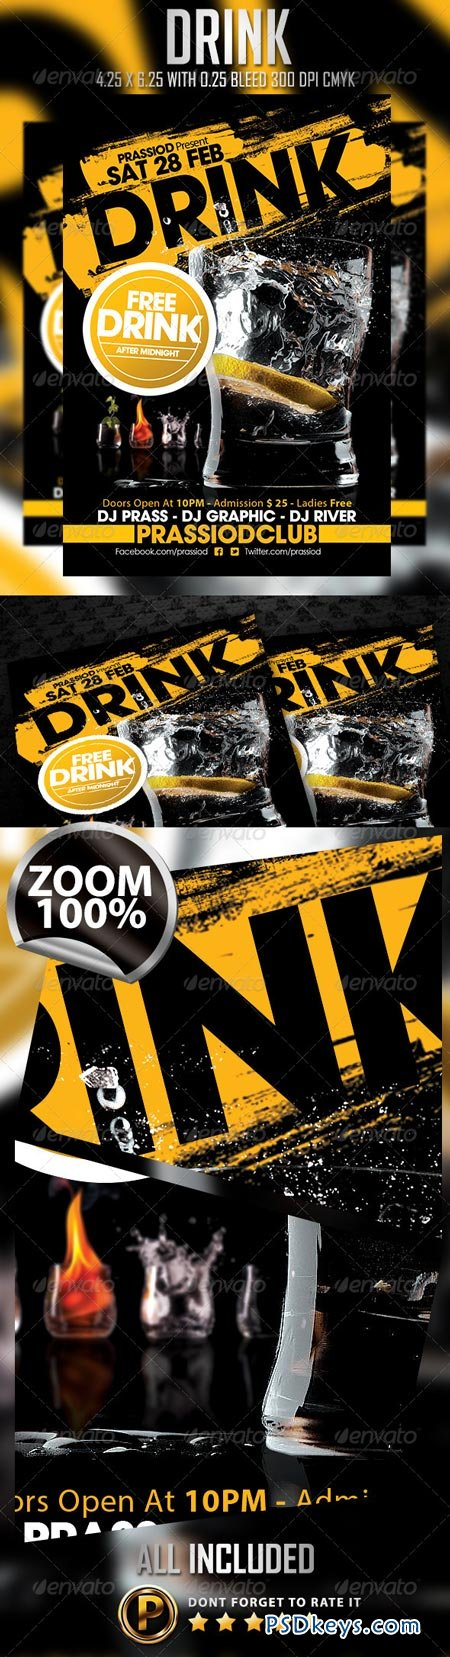 Drink Flyer Template 6963572